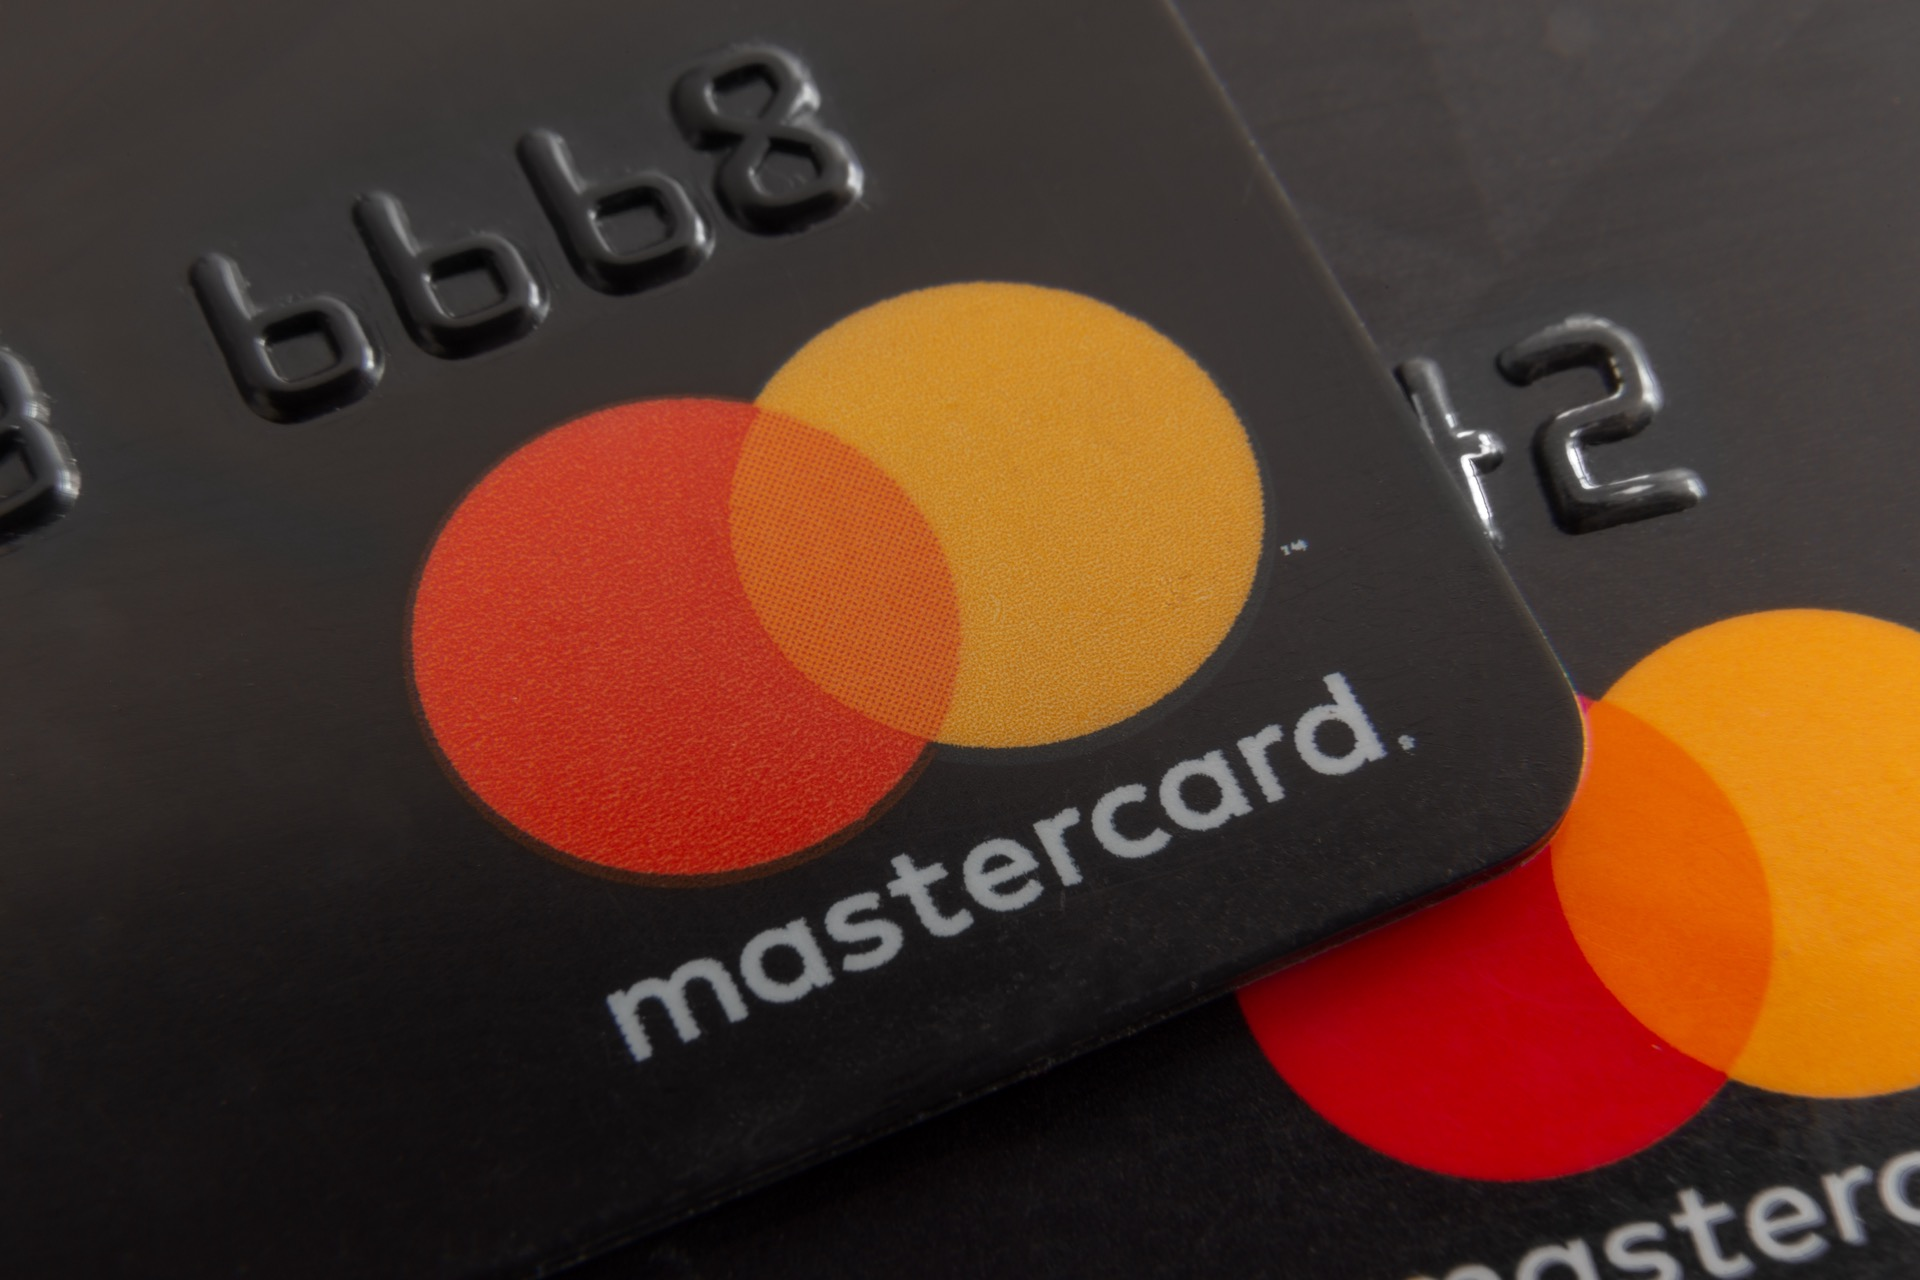 Mastercard muscles up on fraud, buys regtech firm Ekata for $850m